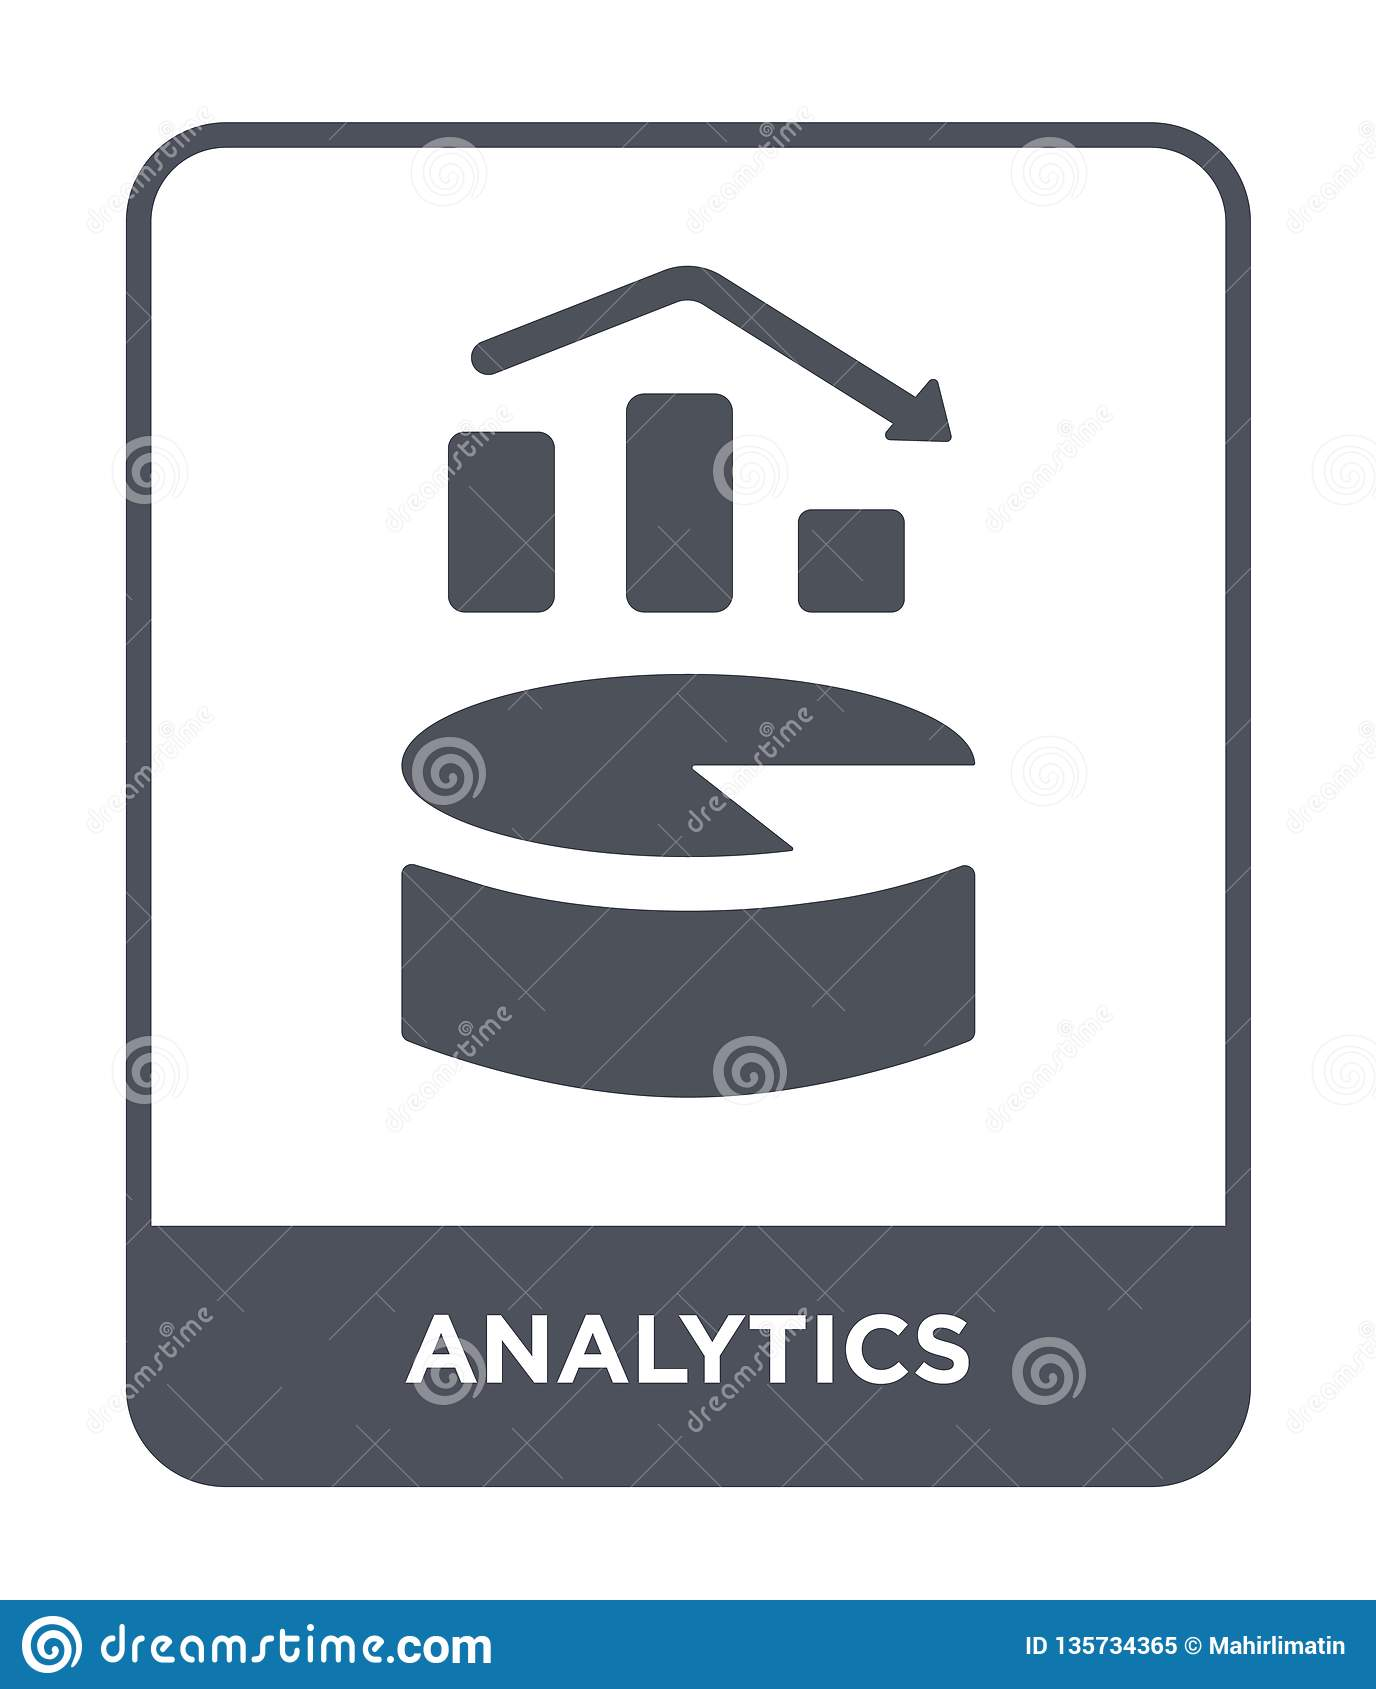 analytics icon in trendy design style. analytics icon isolated on white background. analytics vector icon simple and modern flat